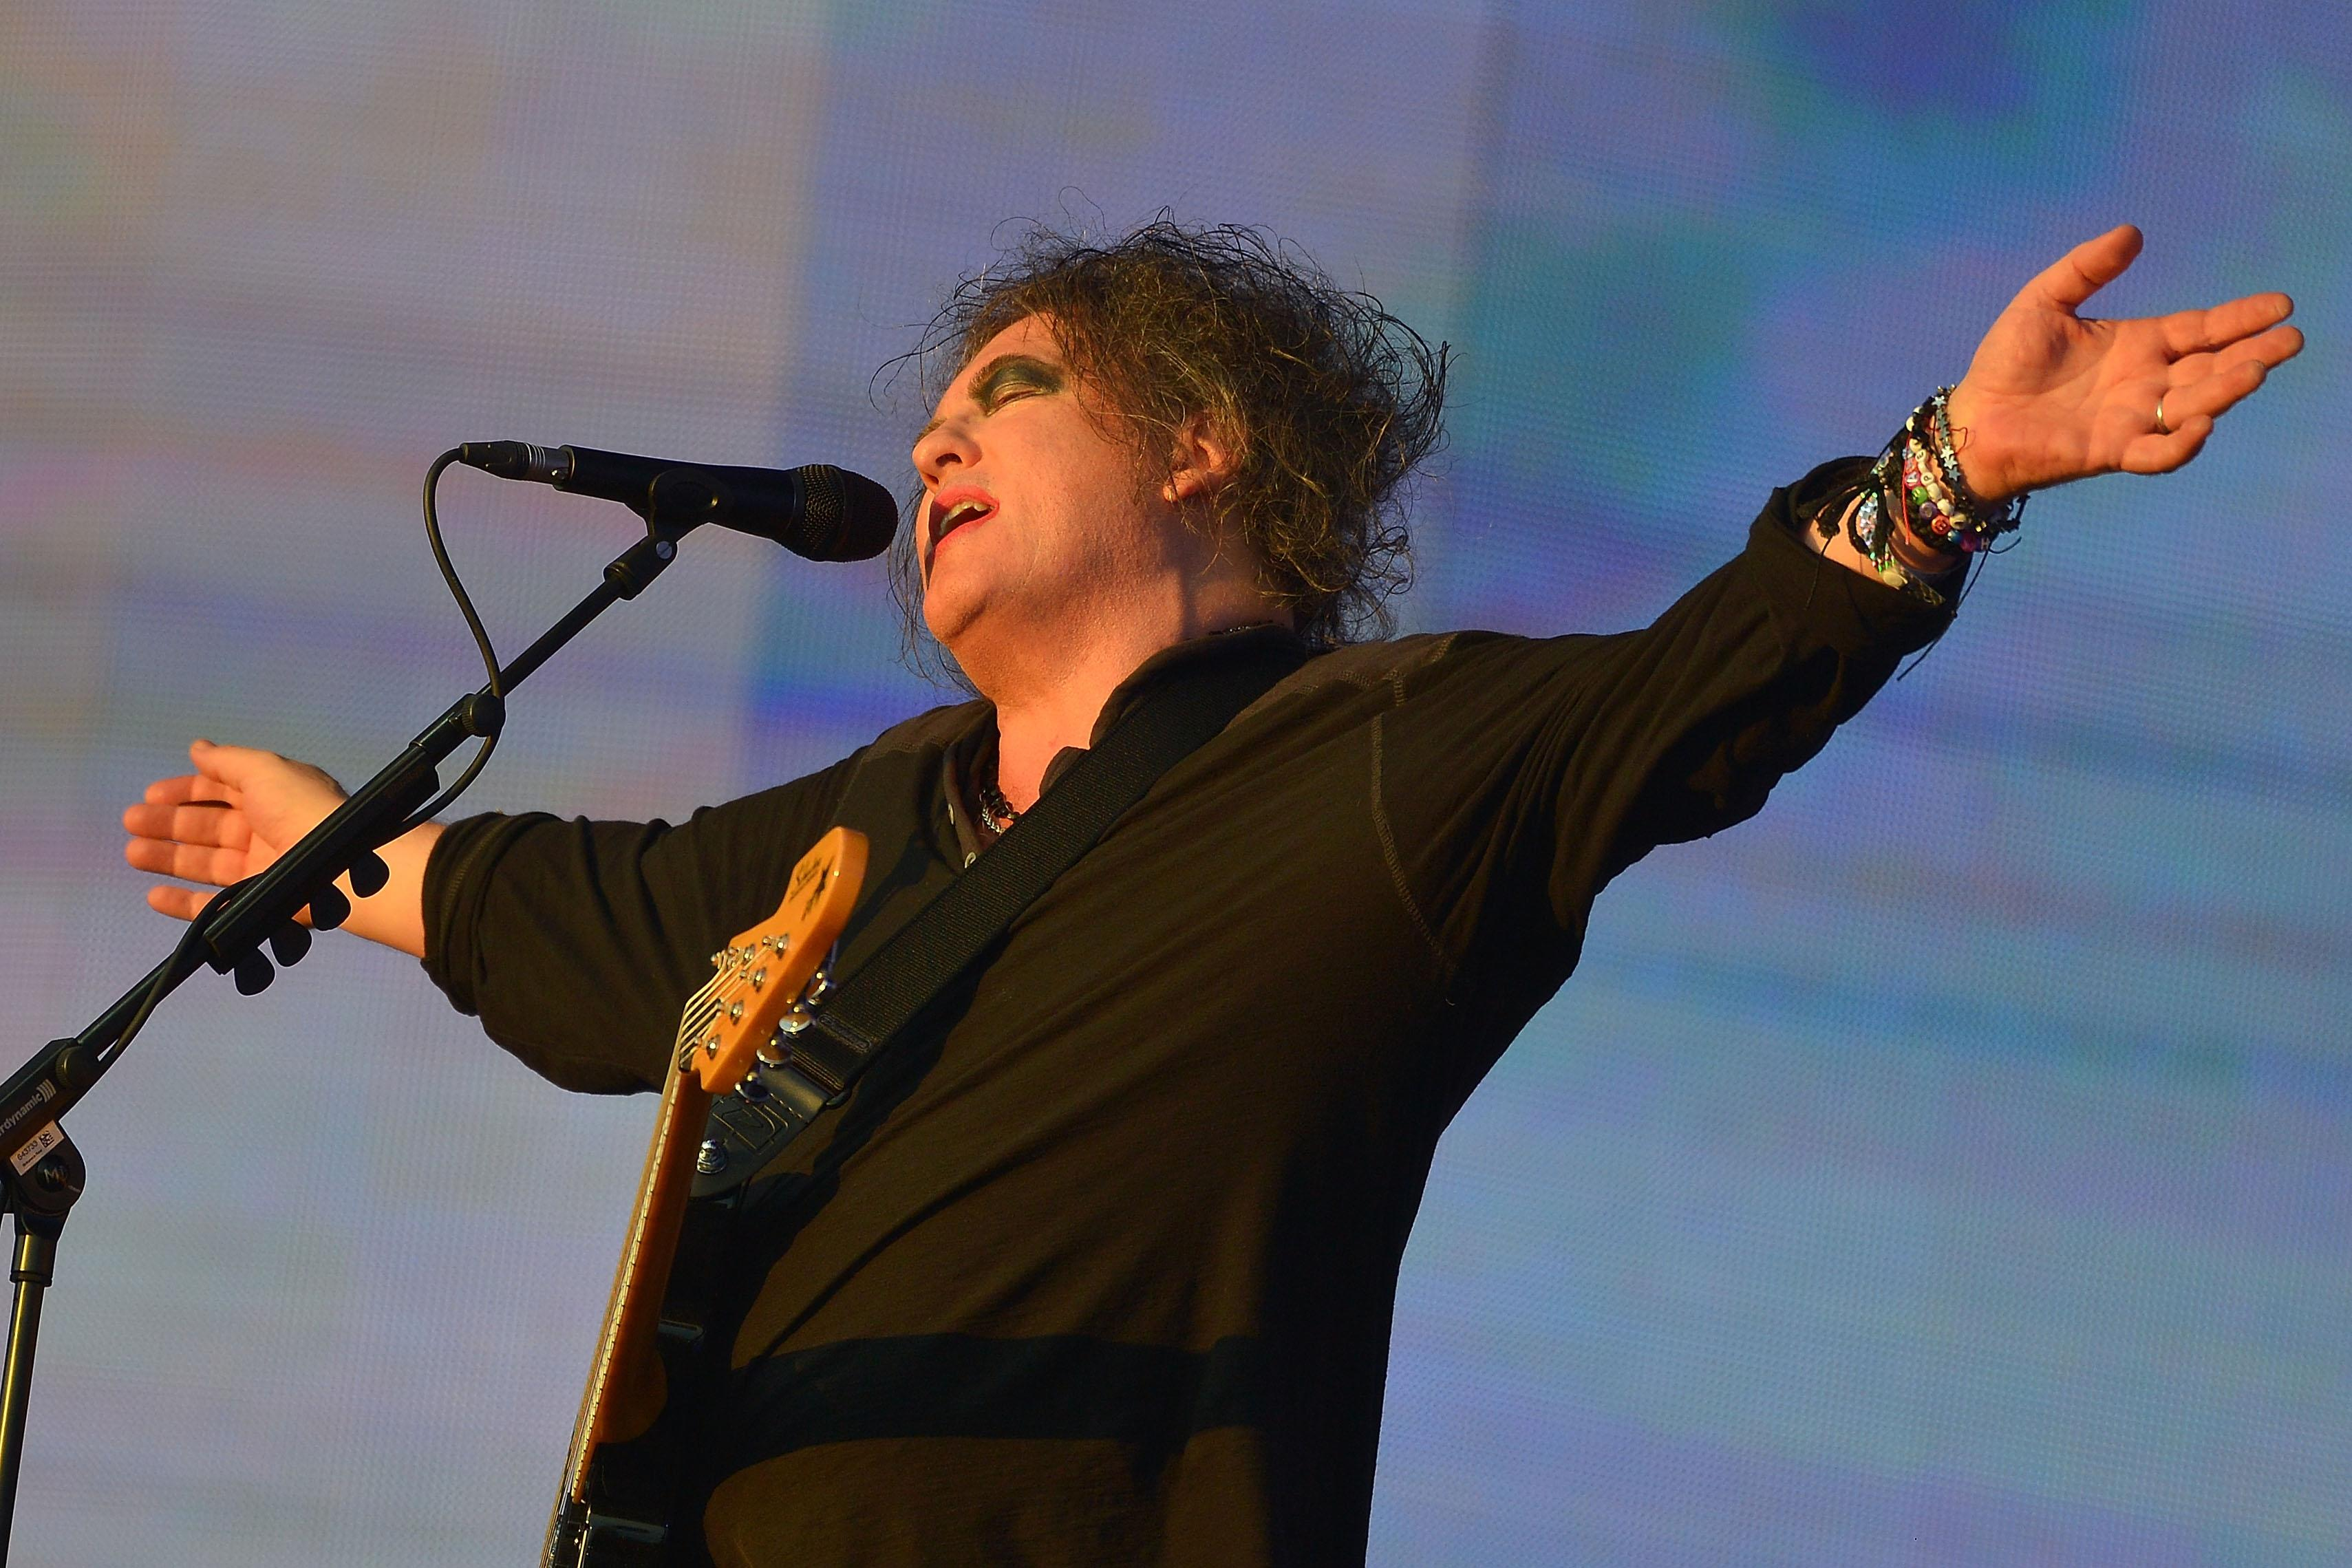 Just like heaven: The Cure celebrate 40 years with perfectly curated London anniversary concert